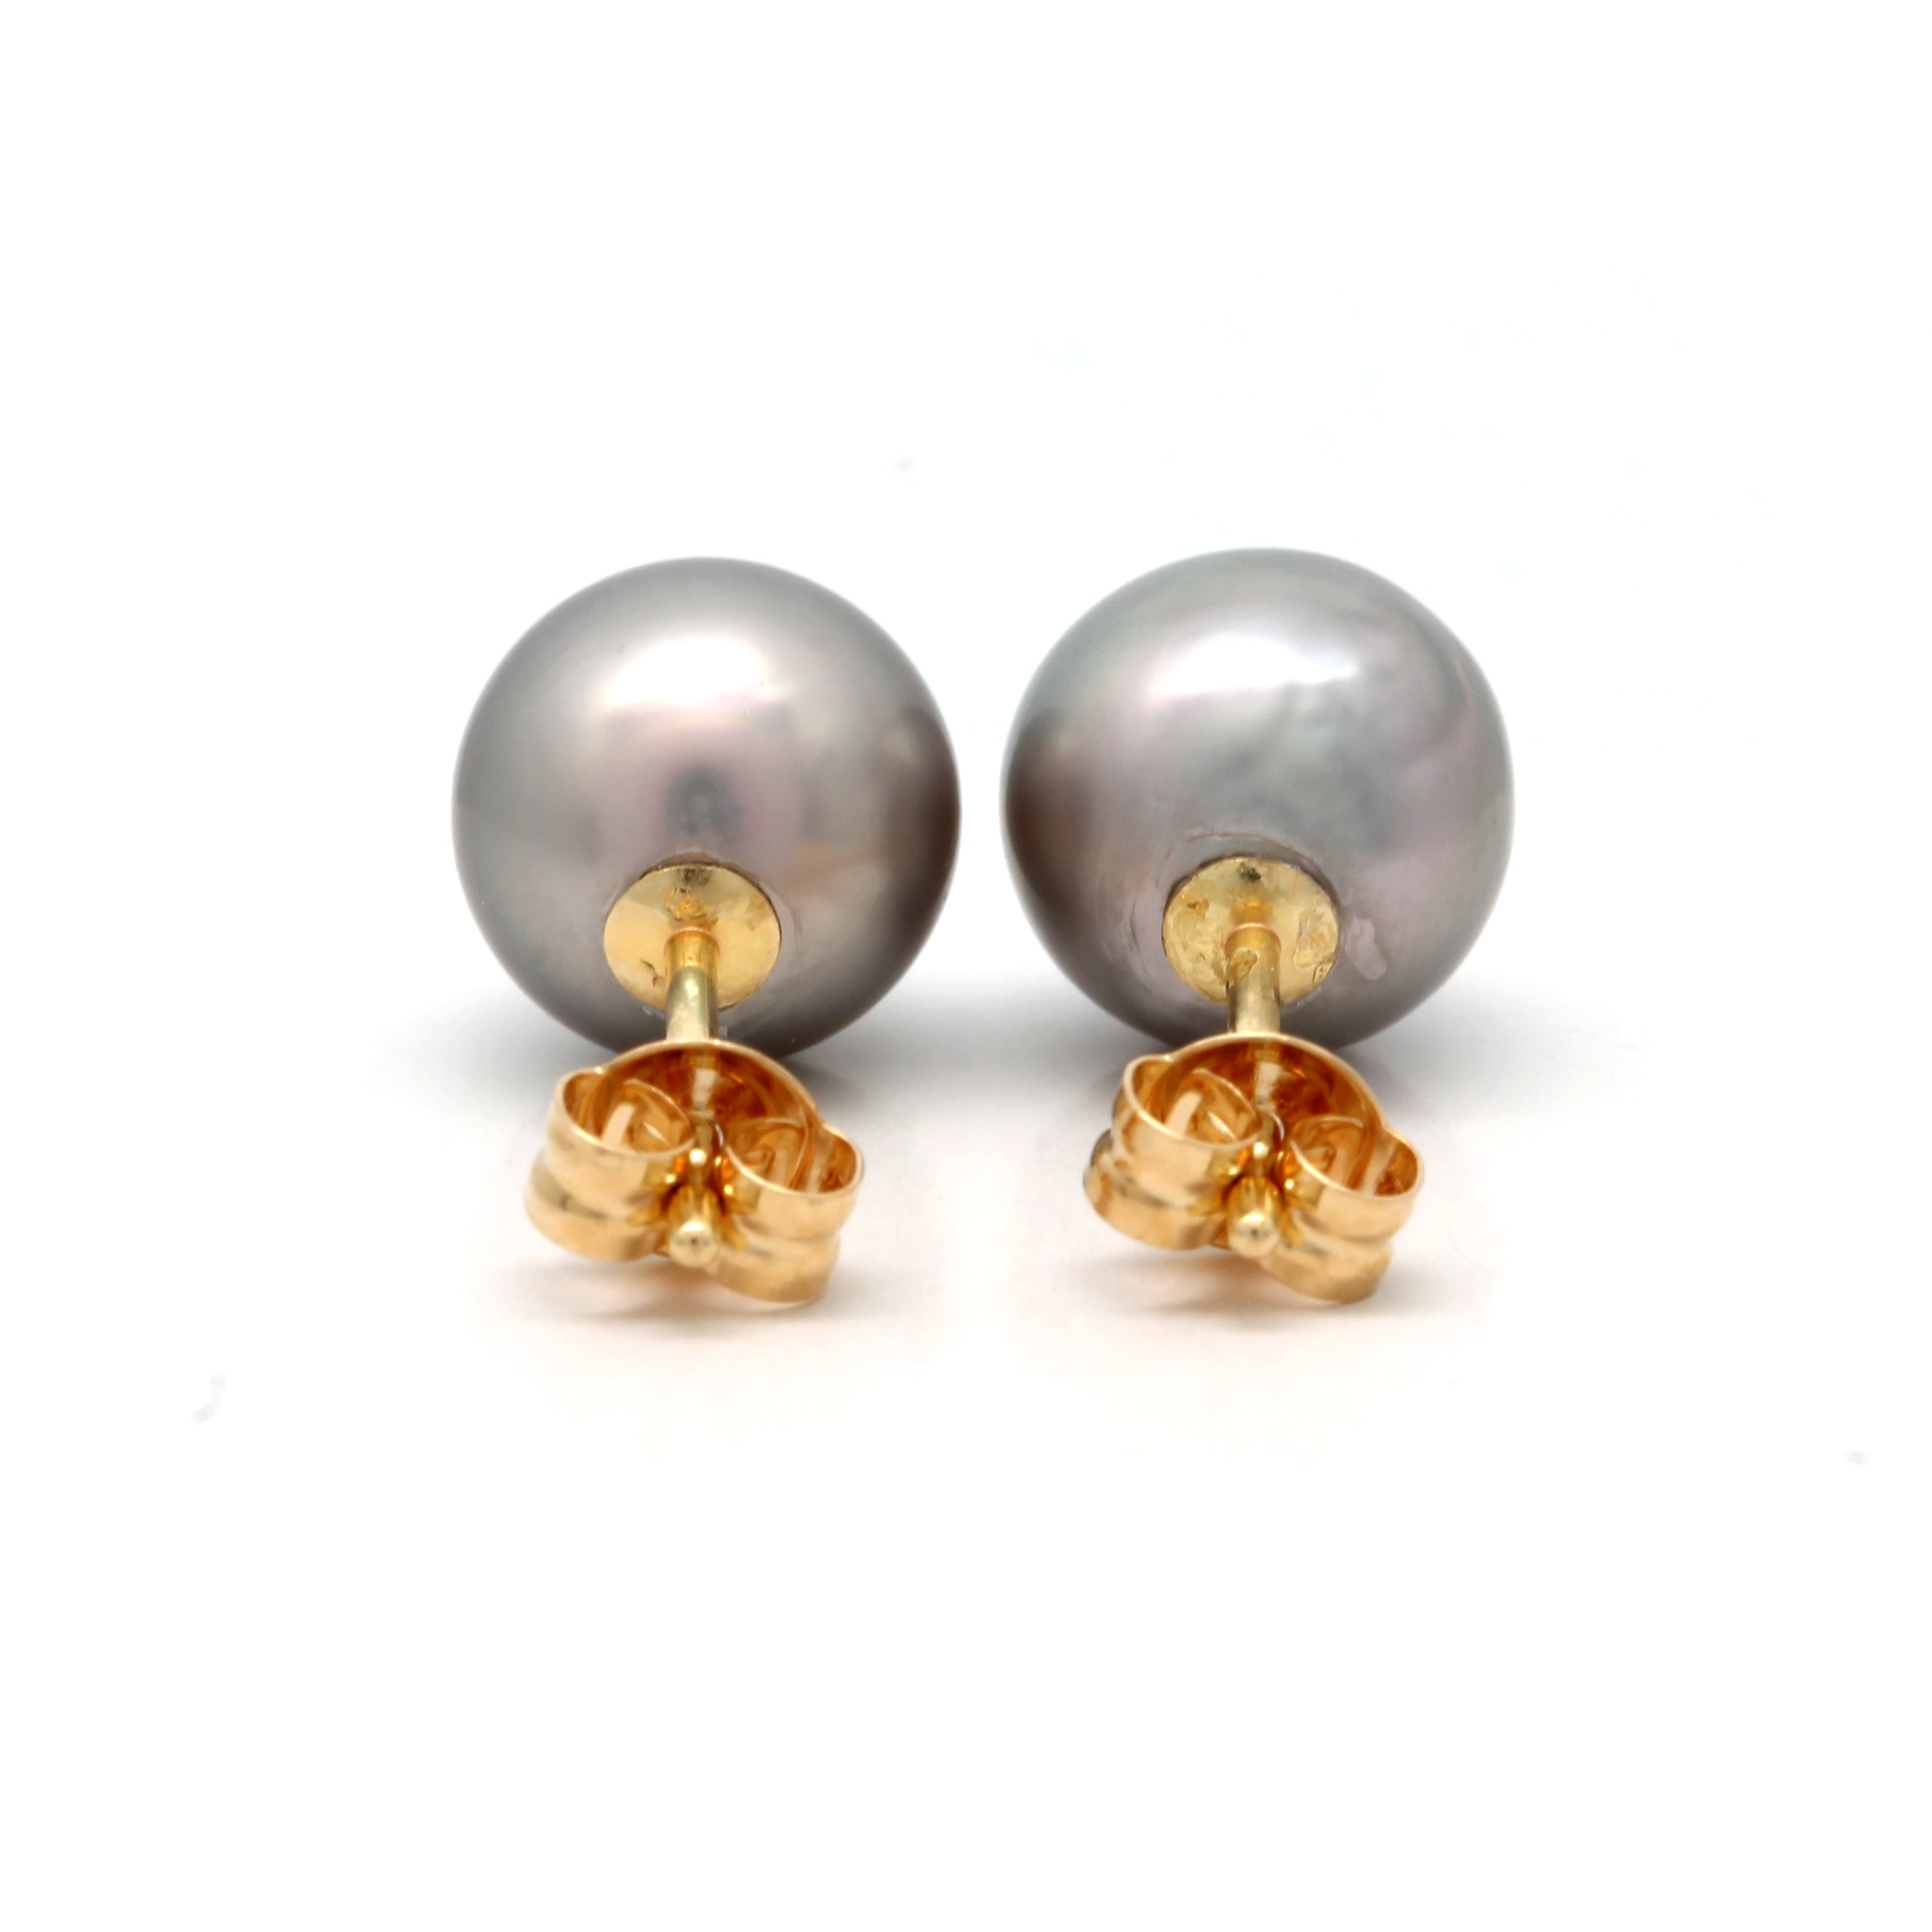 18K Yellow Gold Earrings with Cortez Pearls